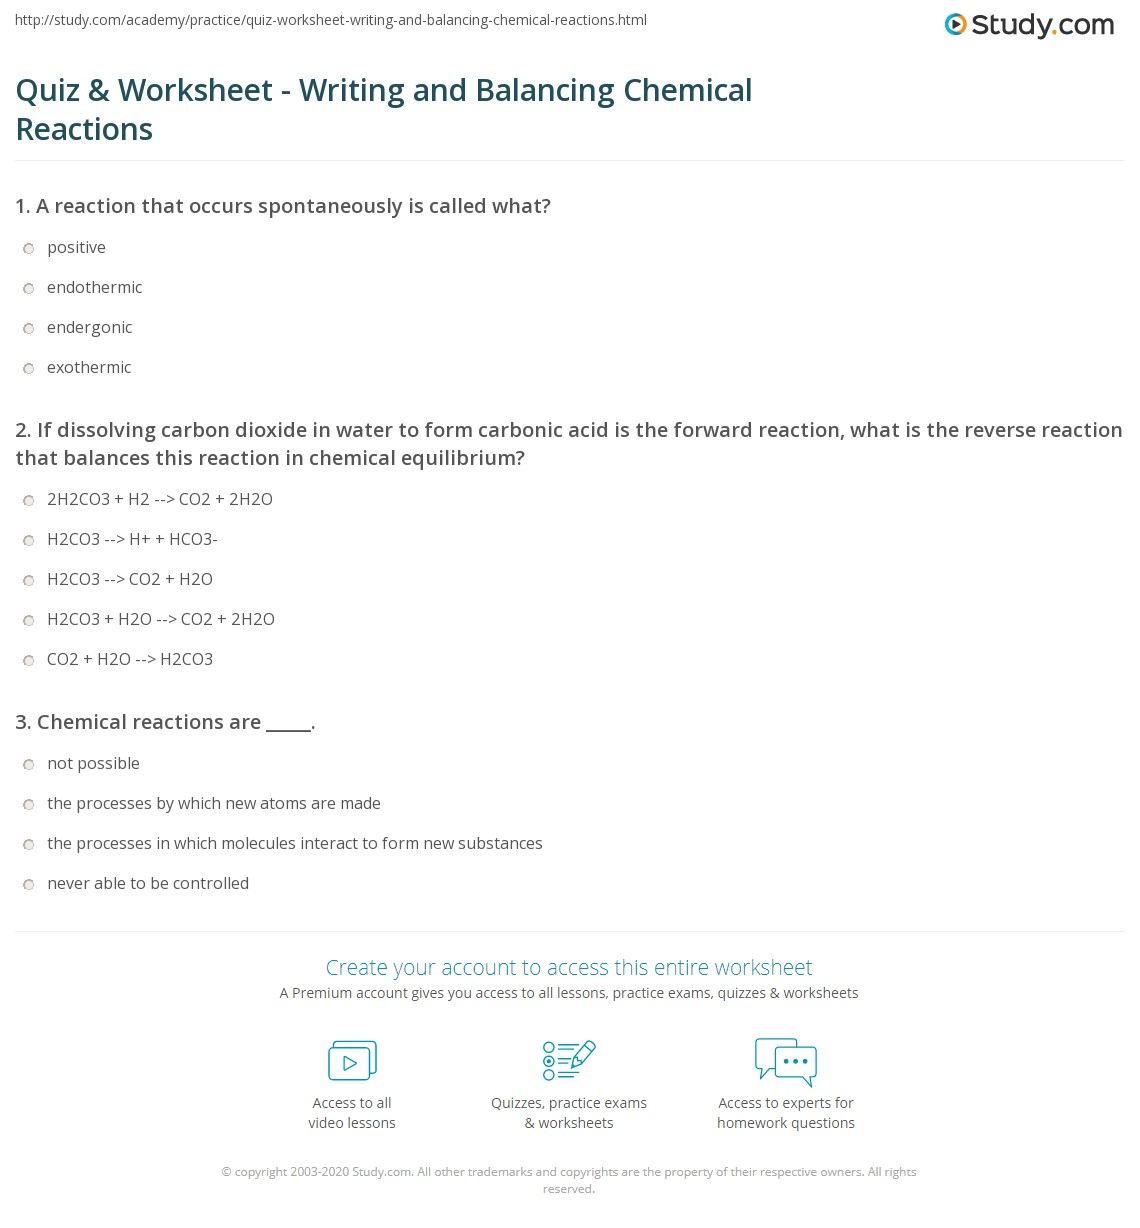 Quiz Worksheet Writing and Balancing Chemical Reactions – Balancing Chemical Equations Chapter 7 Worksheet 1 Answers